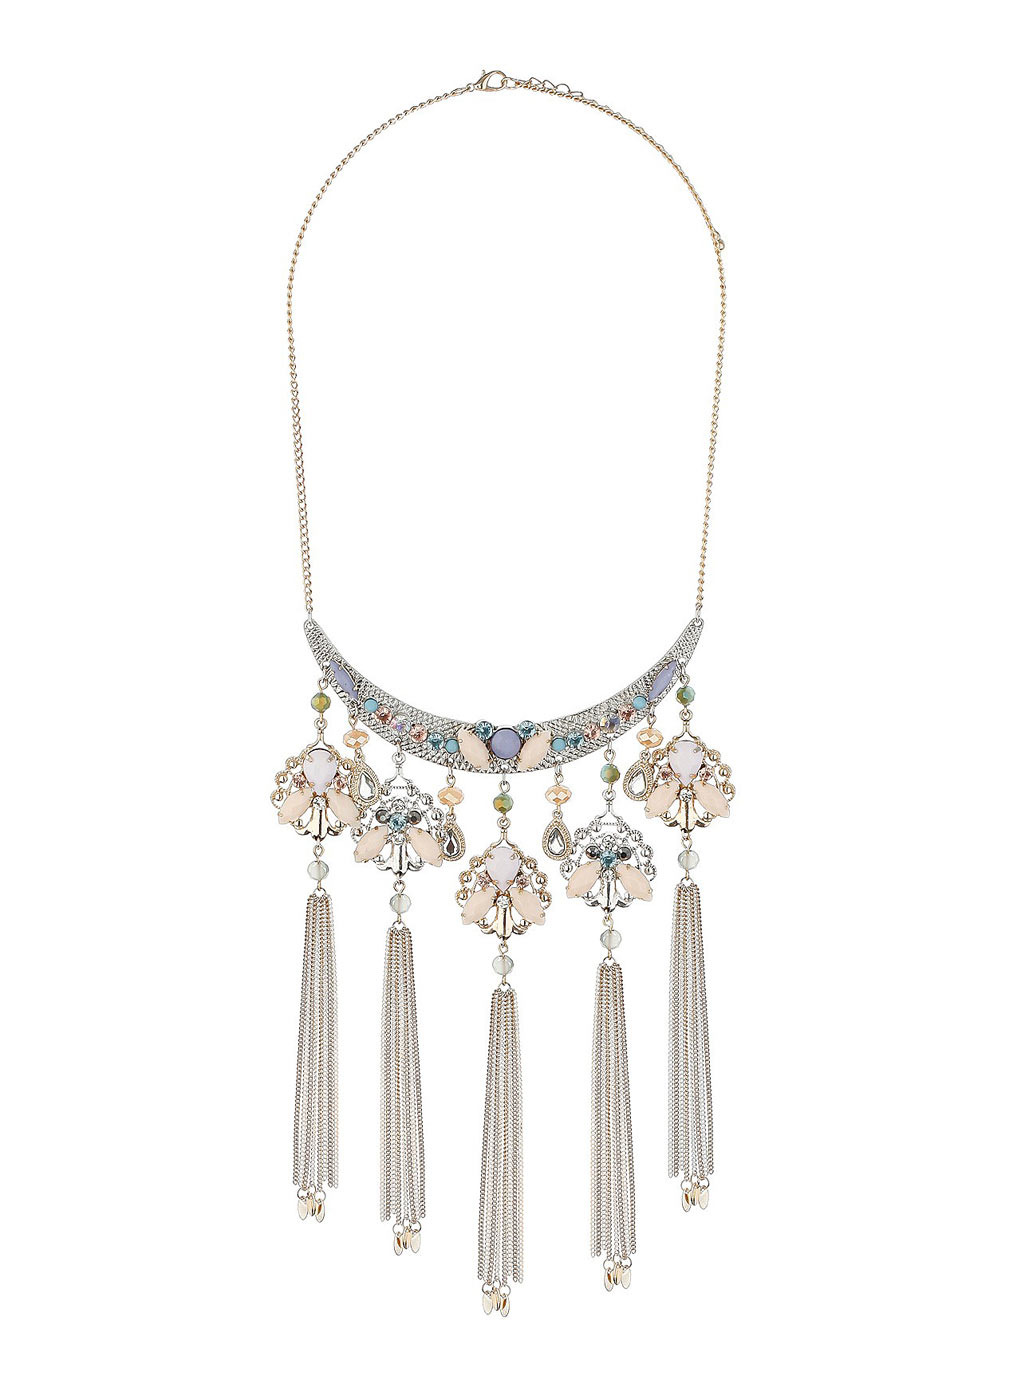 Pastel Ornate Tassel Necklace - predominant colour: silver; occasions: evening, occasion; length: long; size: large/oversized; material: chain/metal; finish: metallic; embellishment: tassels; style: bib/statement; season: s/s 2014